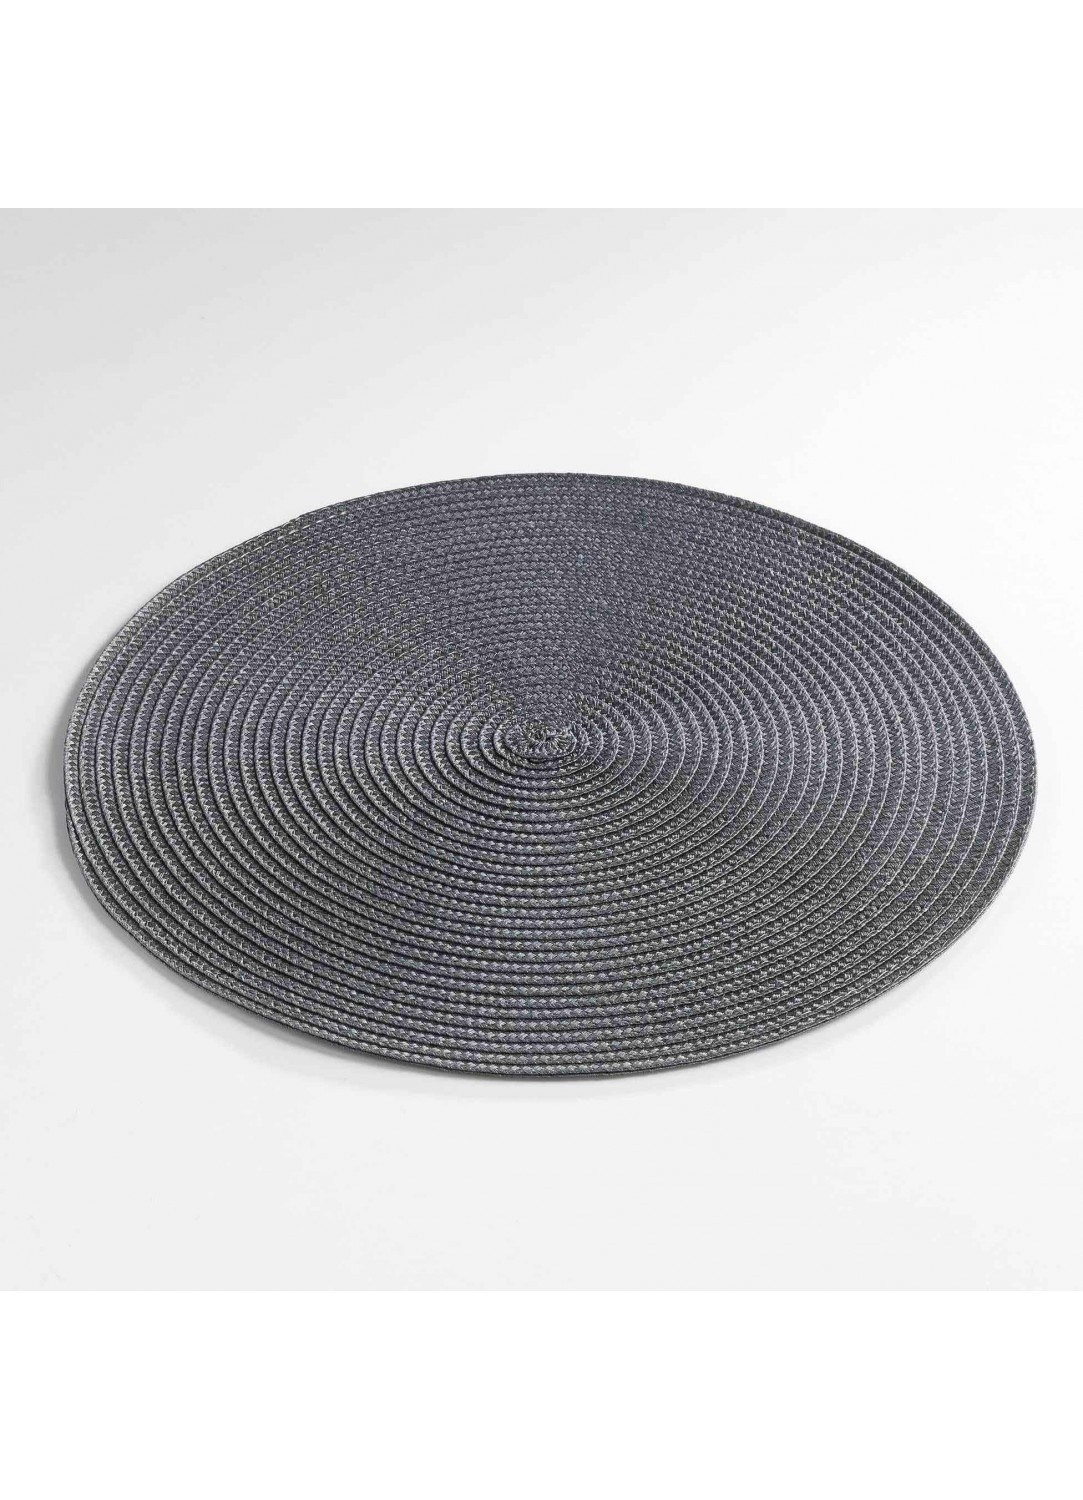 Set de Table Rond et Coloré  (Anthracite)